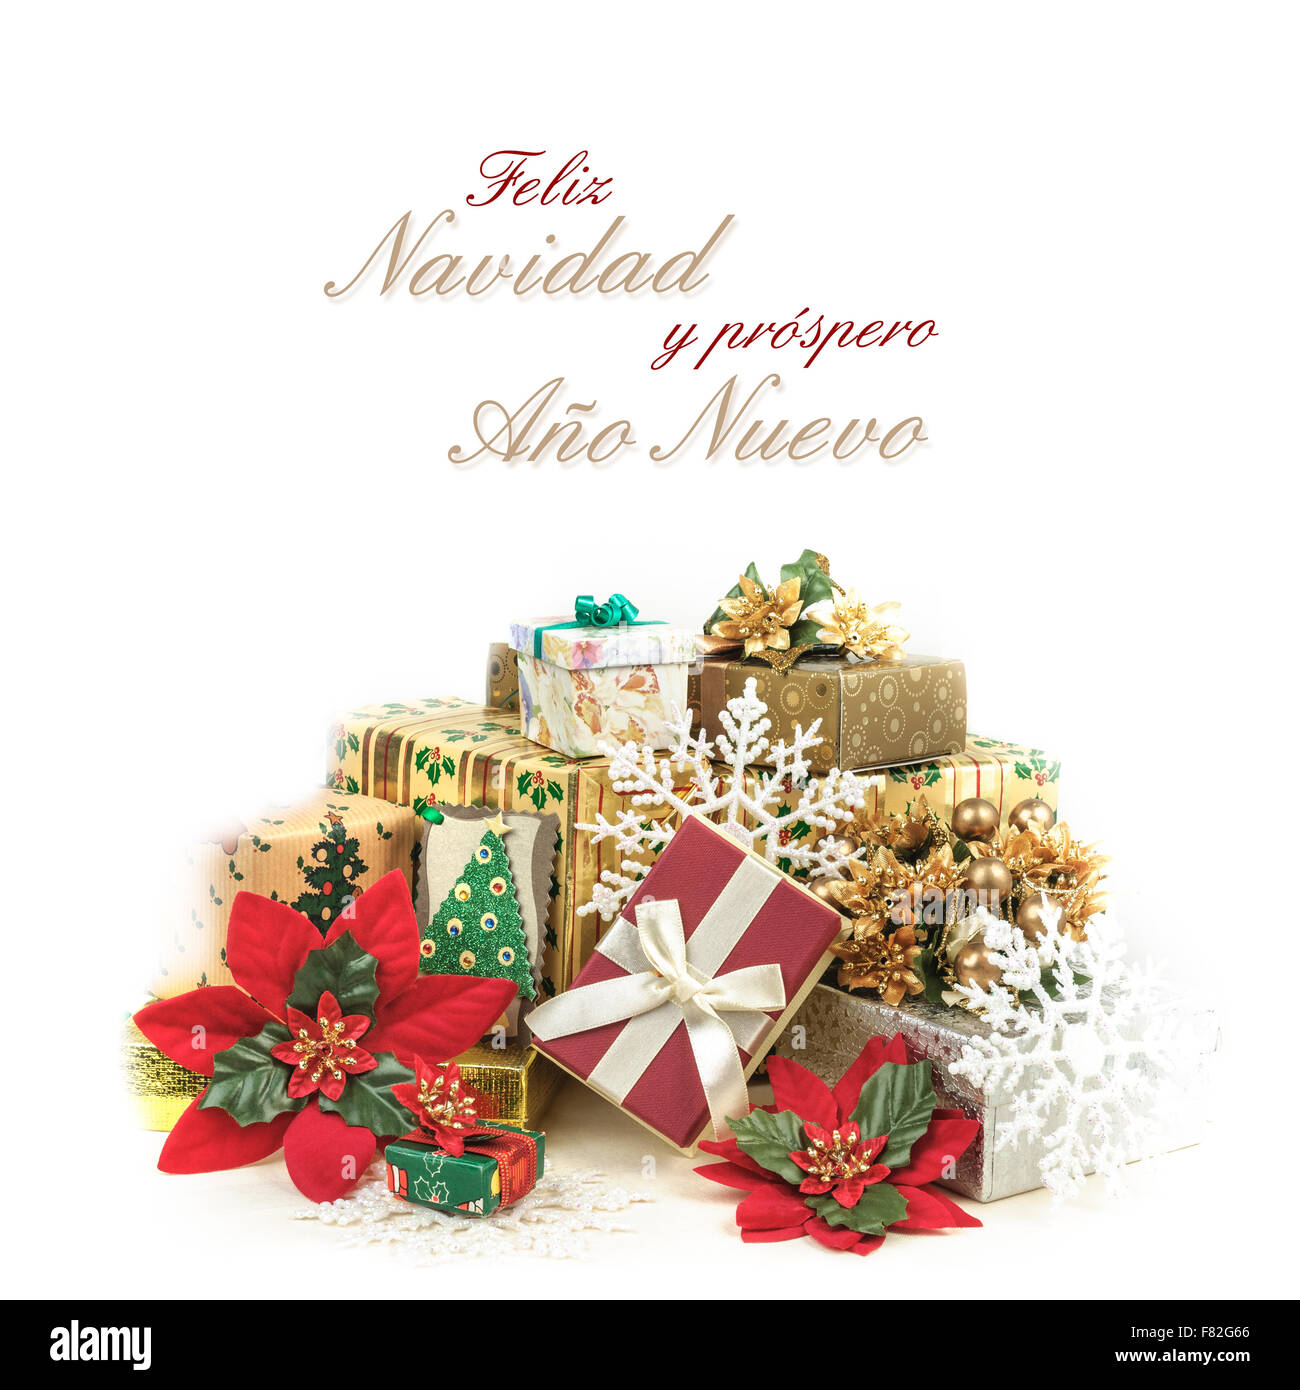 Christmas greeting card with pile of gifts in colorful wrapping and the text Feliz Navidad y próspero Año - Stock Image